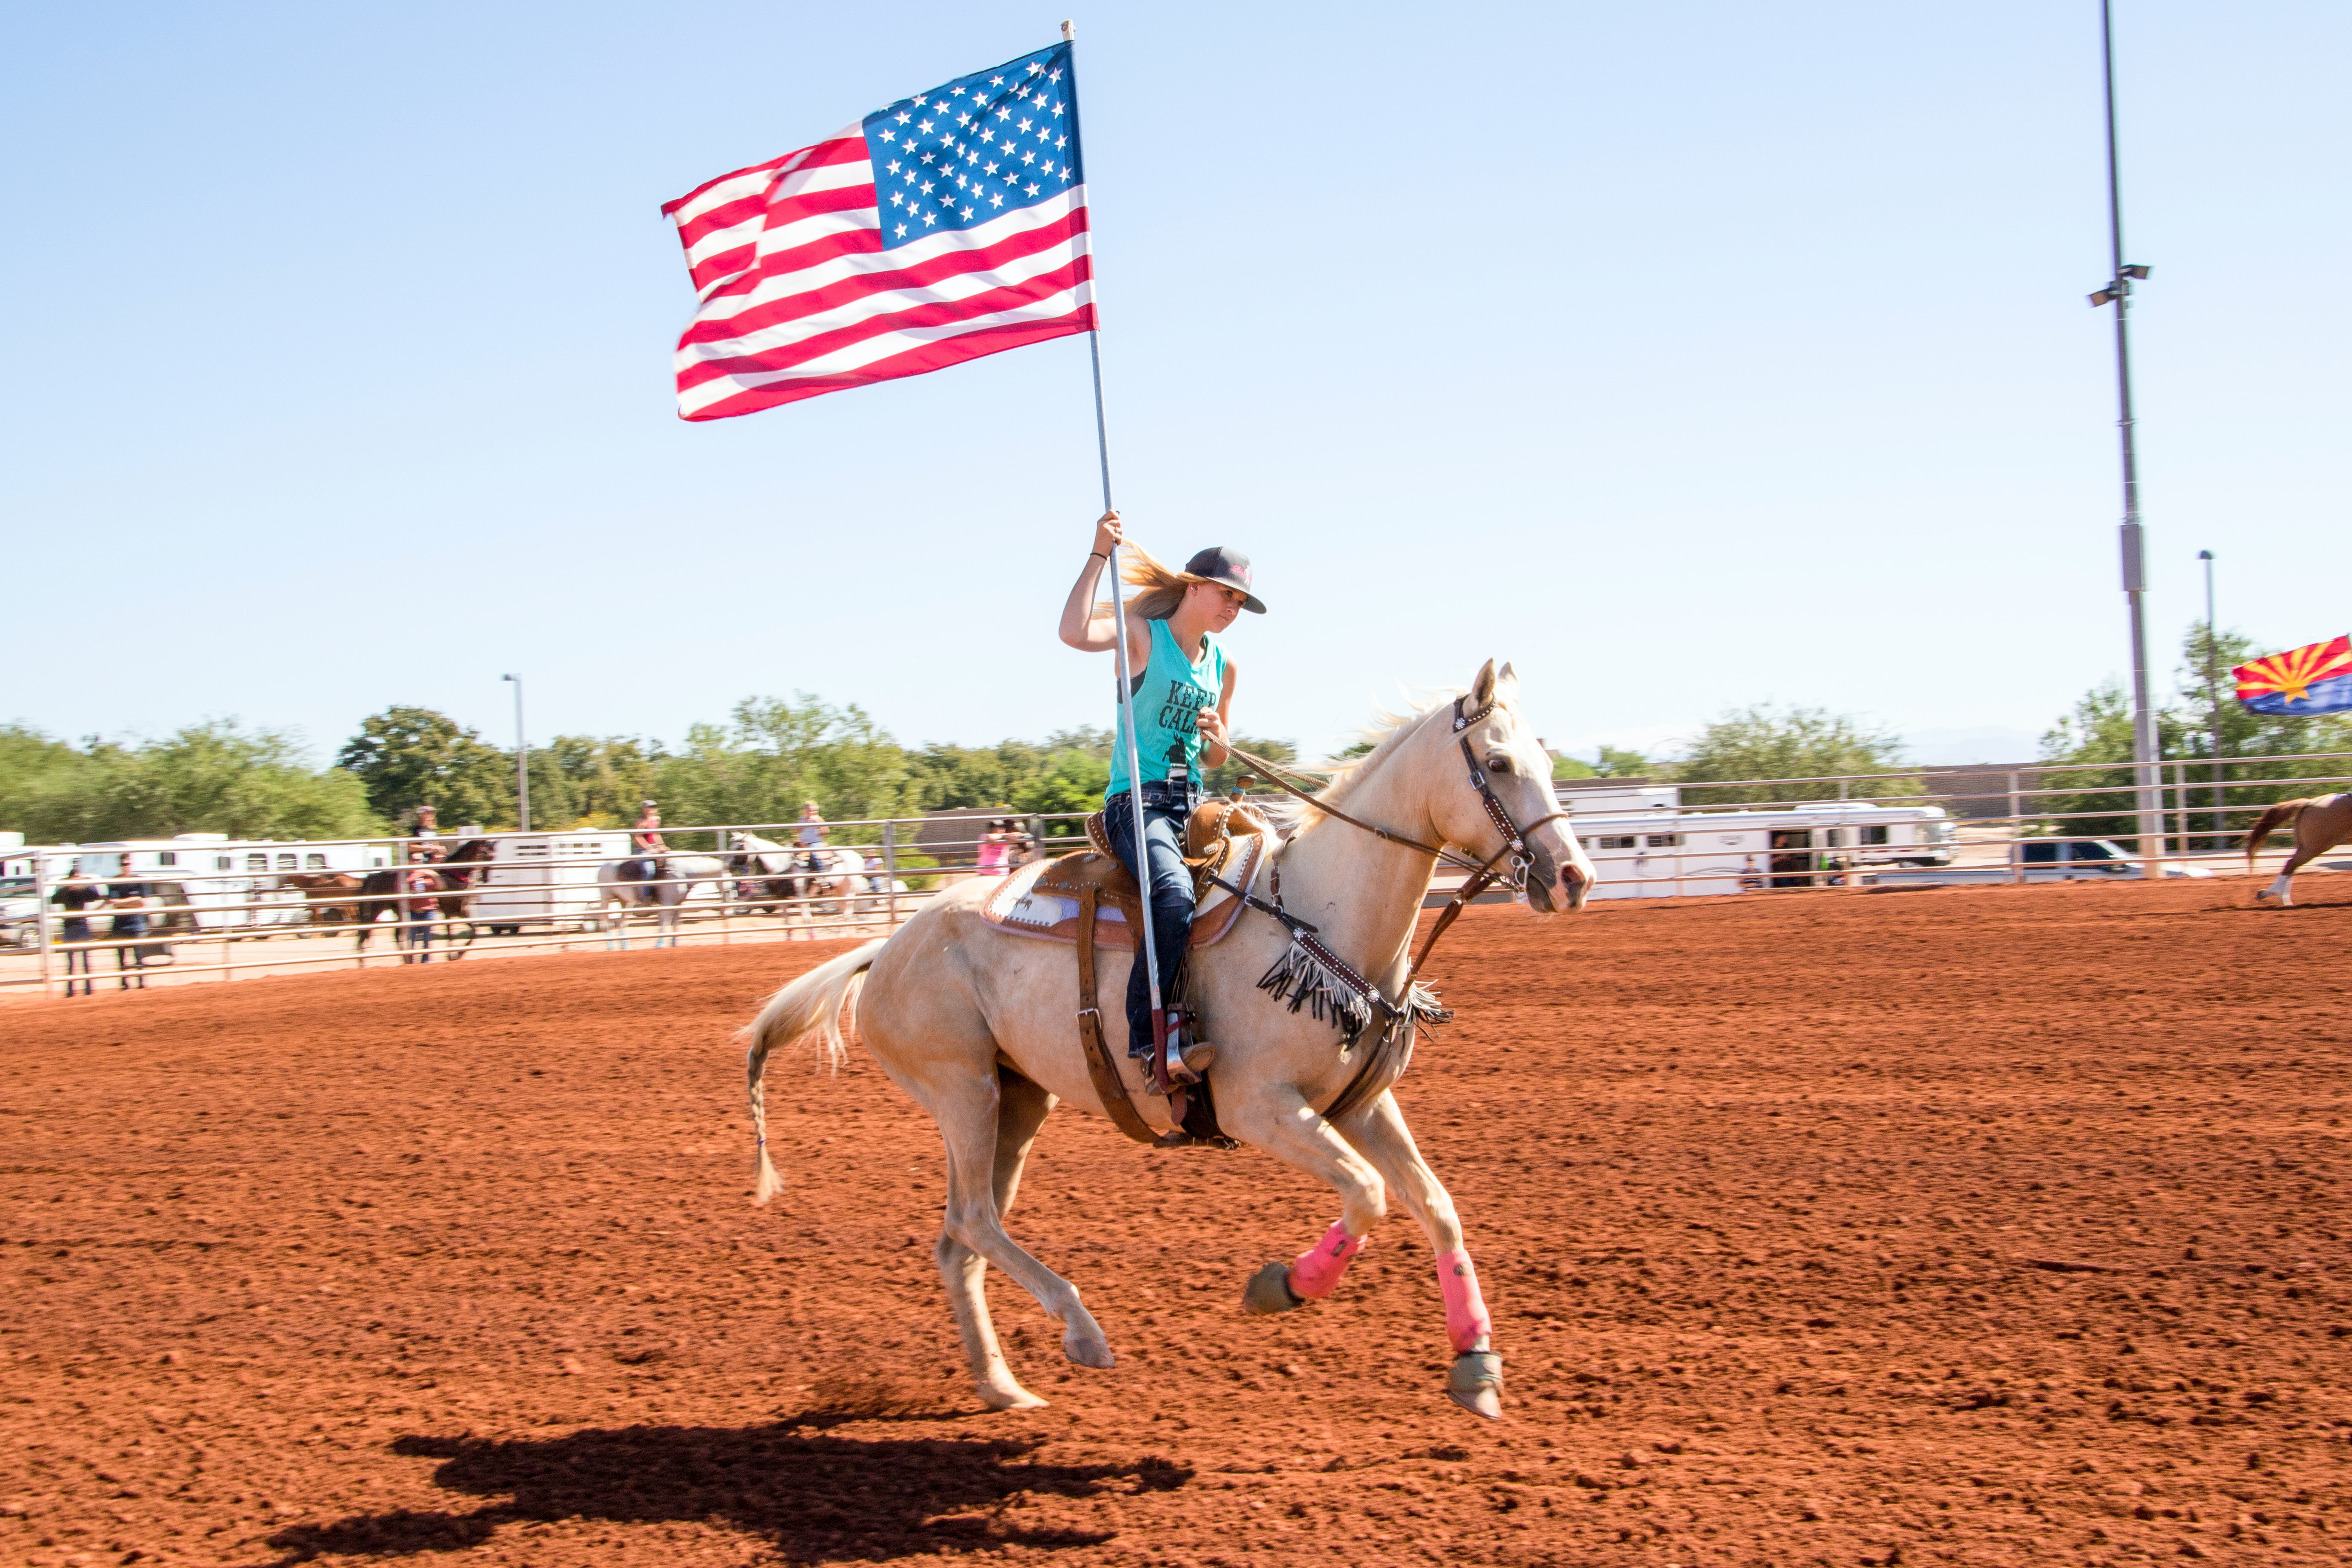 Take in a Texas rodeo